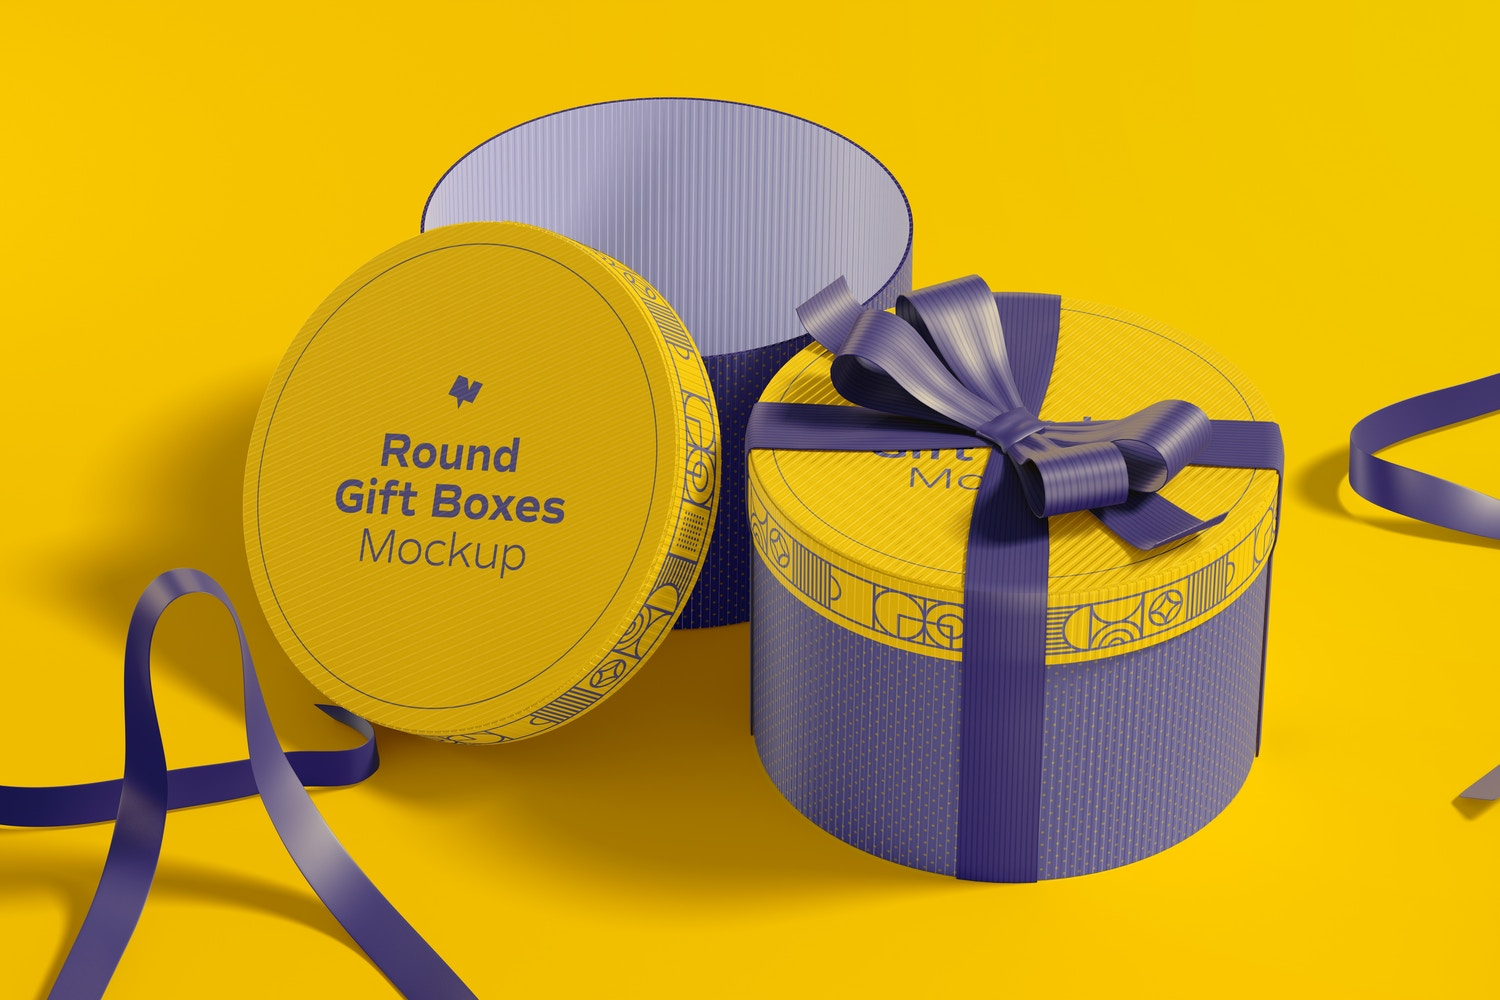 What do you prefer, gold or purple ribbons?